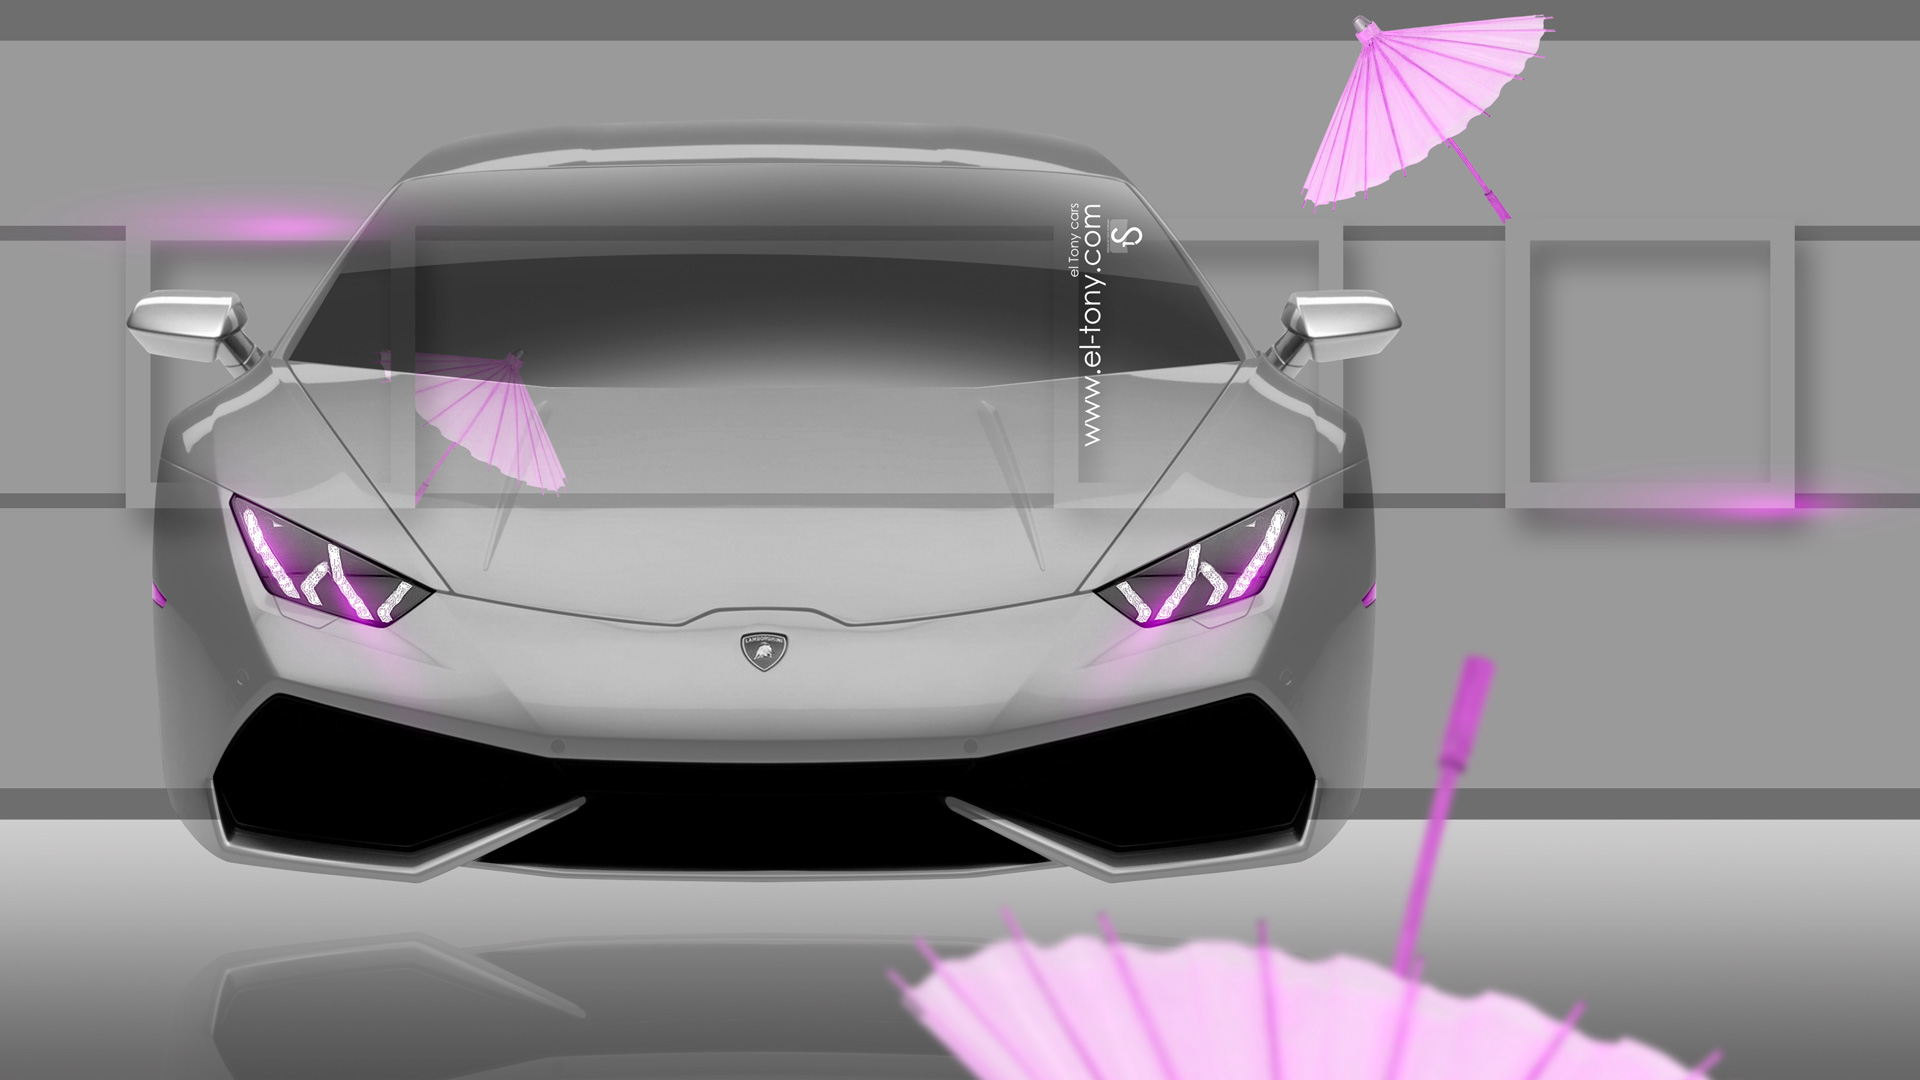 ... Lamborghini Huracan Fantasy Crystal Home Fly Car 2014